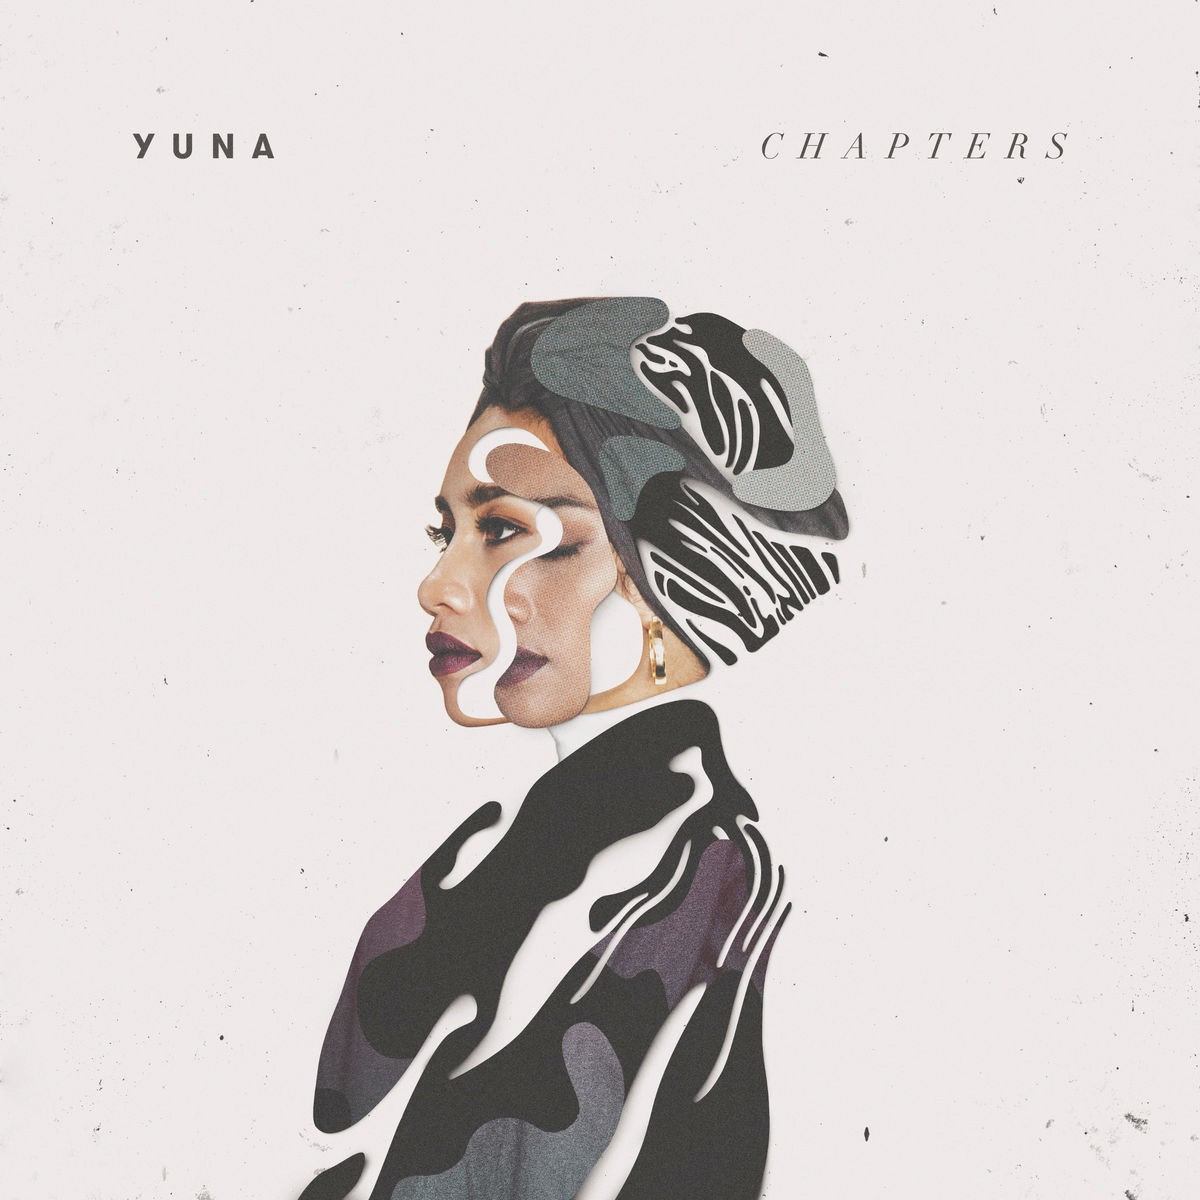 Yuna - Chapters CD - 06025 4781517